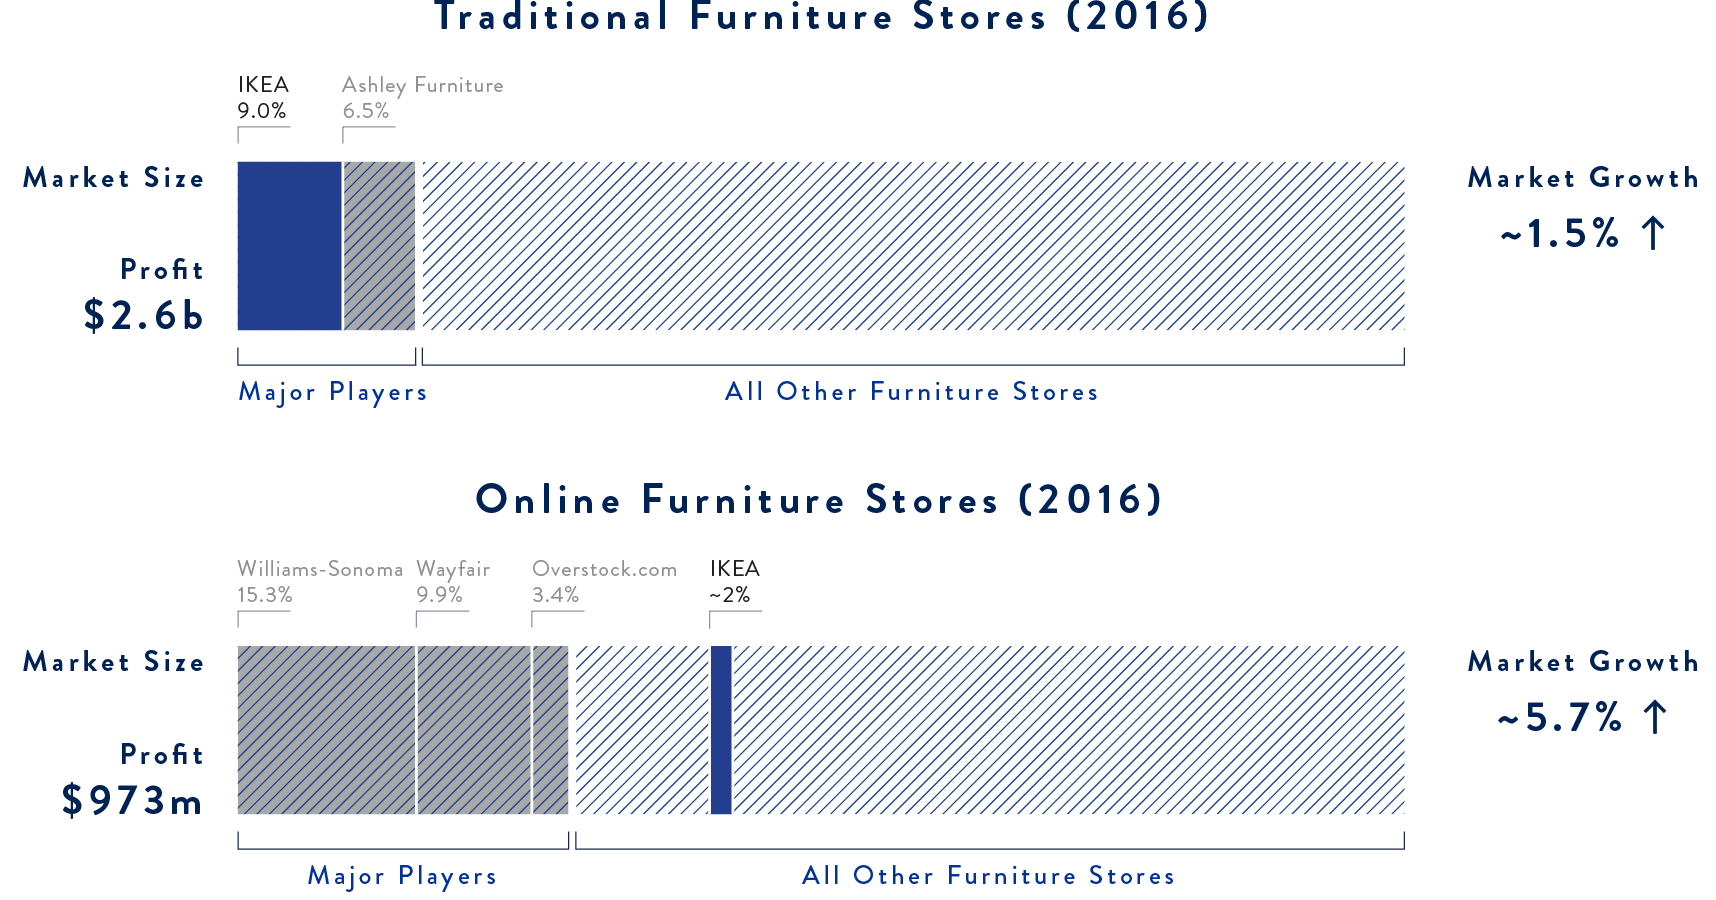 Market command and growth of traditional and online furniture stores in 2016